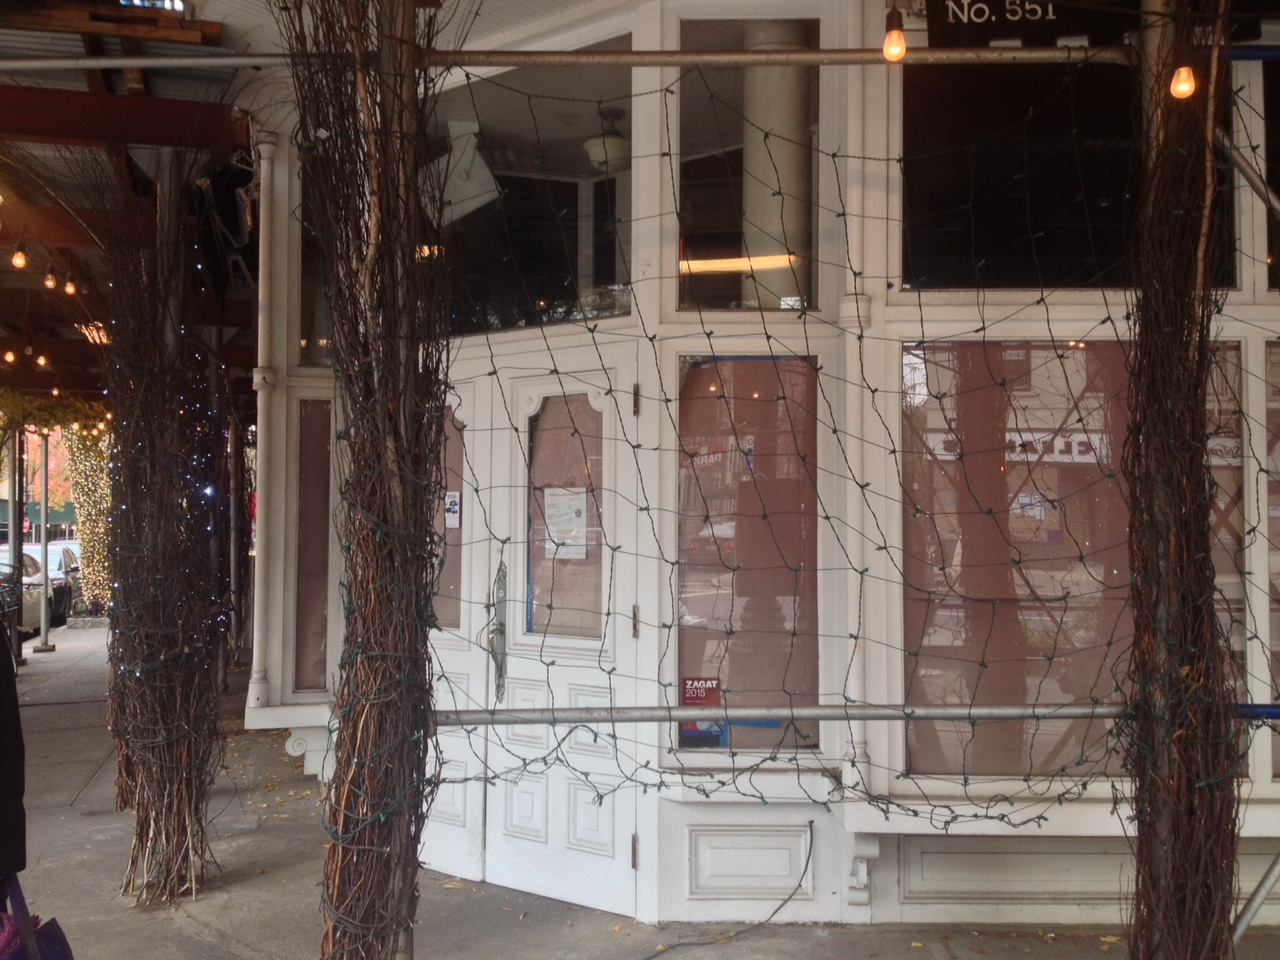 [Spasso, behind a web of lights, branches, and scaffolding.]